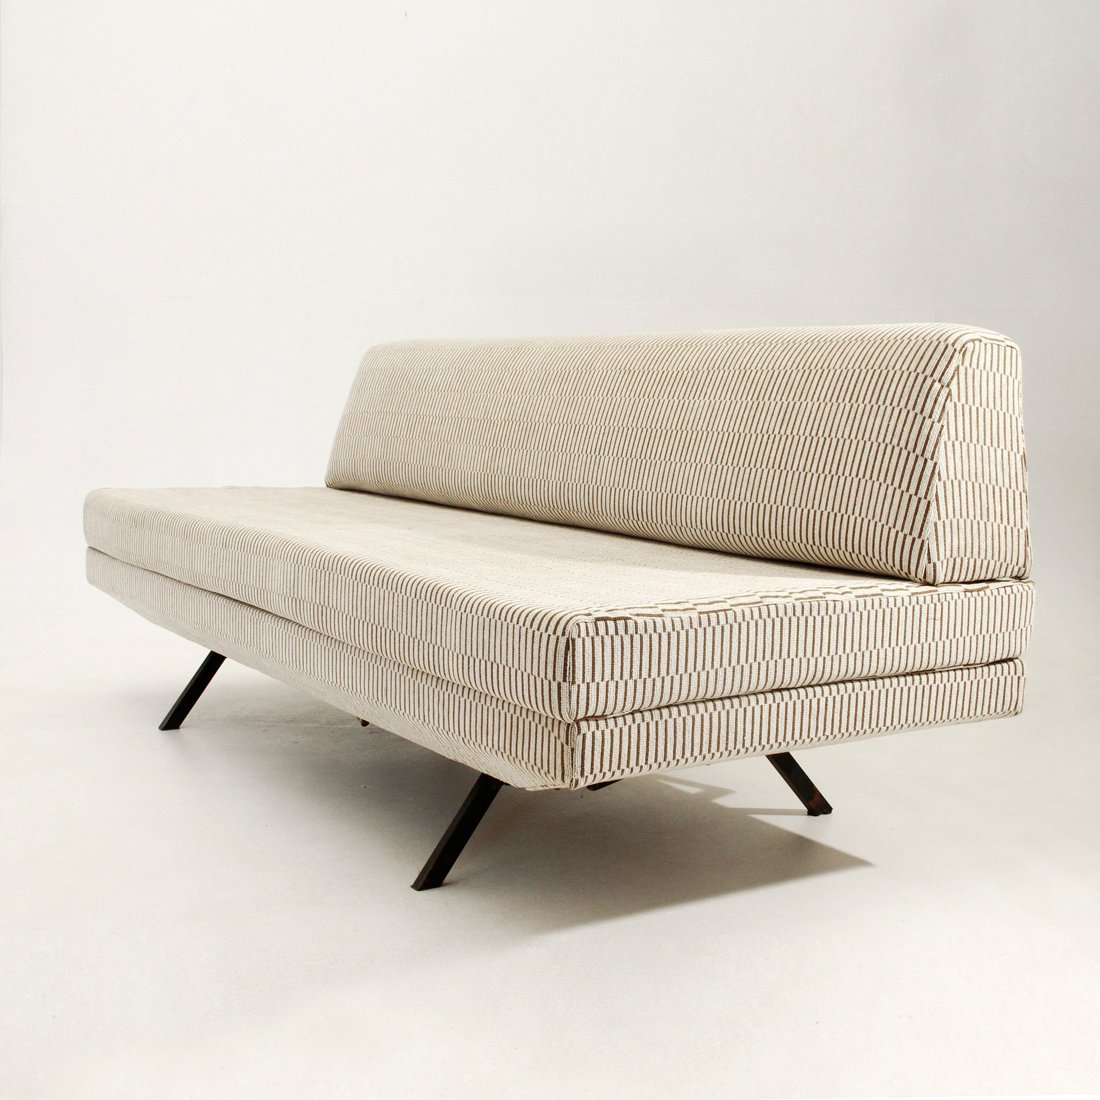 Mid century italian sofa bed from relaxy for sale at pamono for Sofa bed 4 in 1